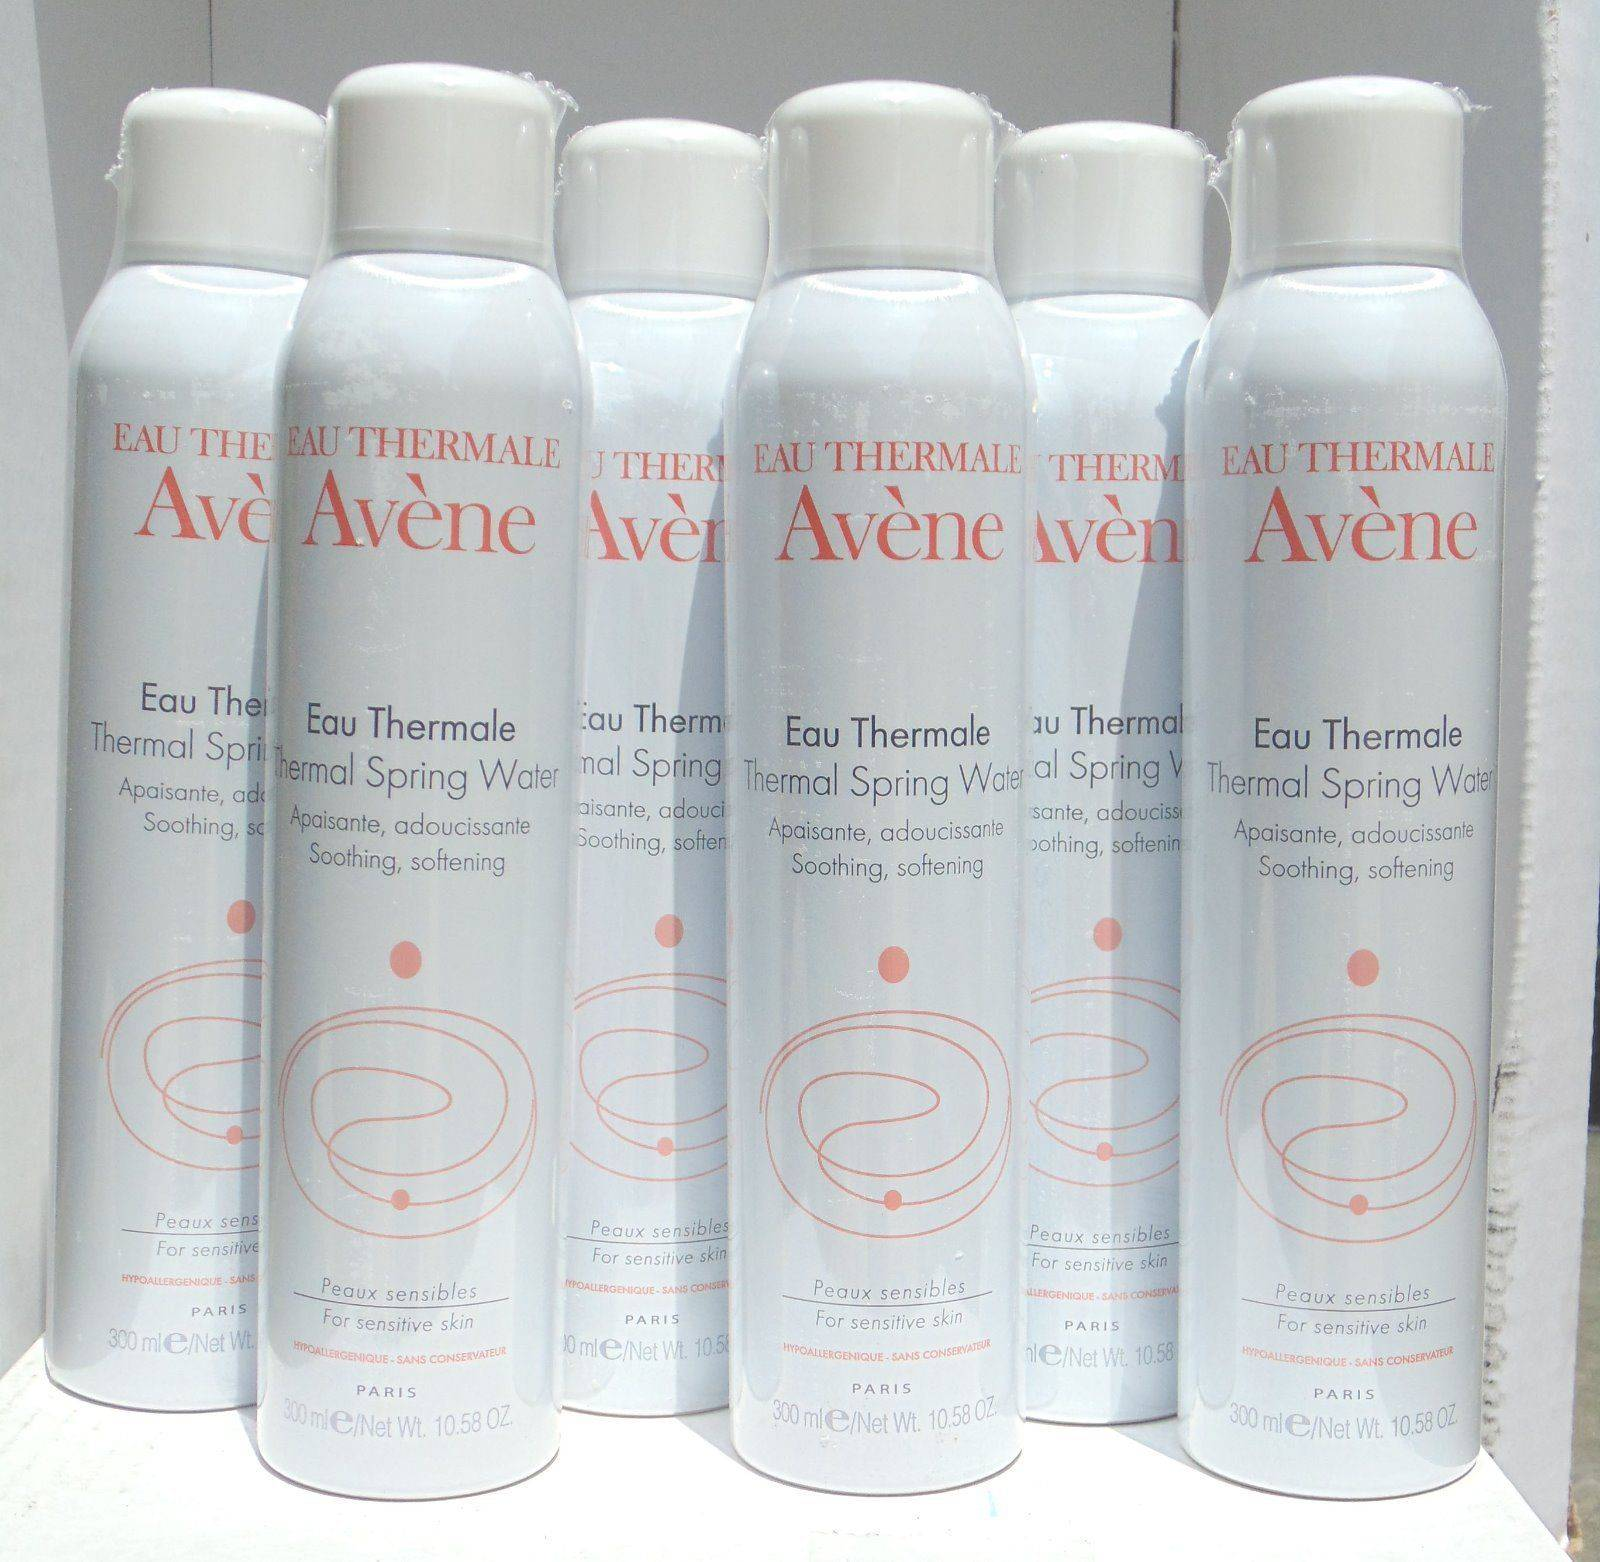 Avene Thermal Spring Water, Sensitive Skin